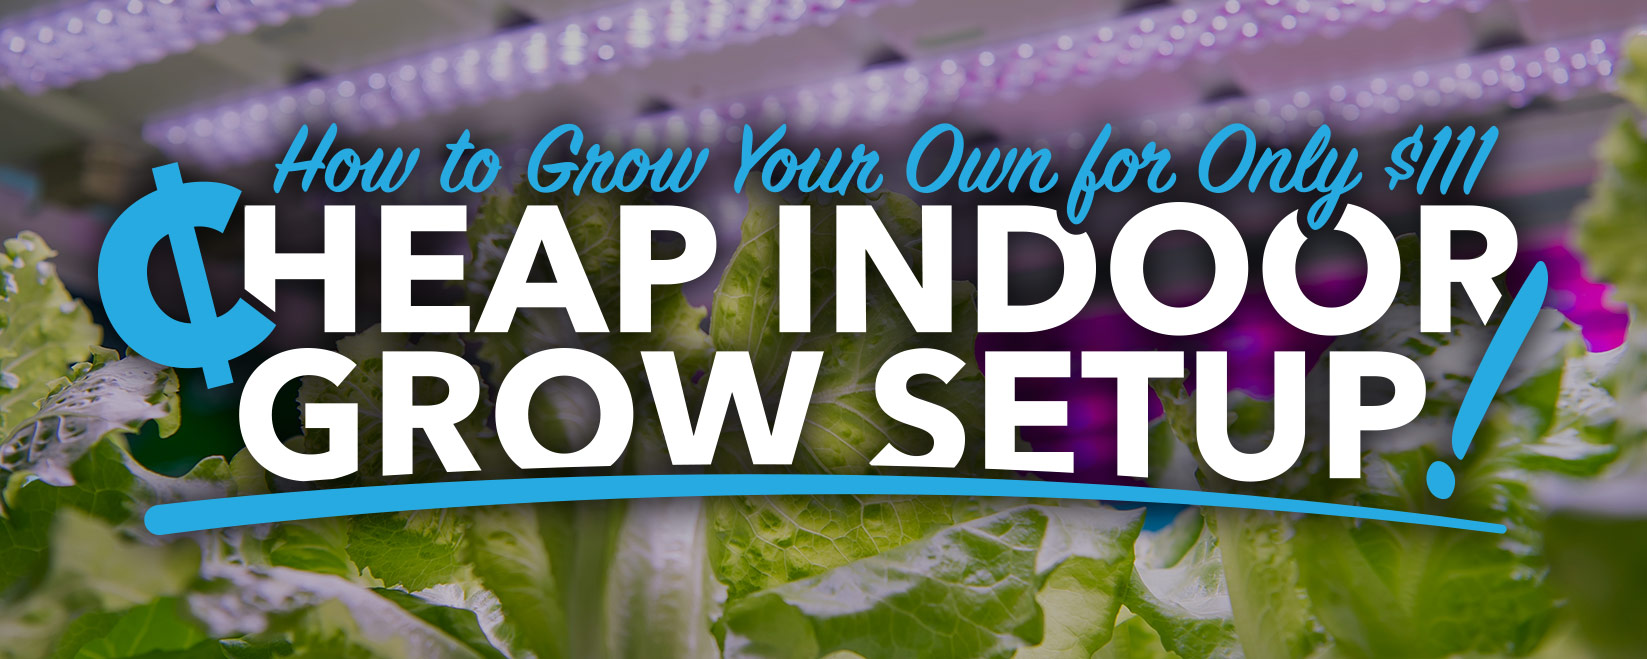 Cheap Indoor Grow Setup: How to Grow Your Own for Only $111